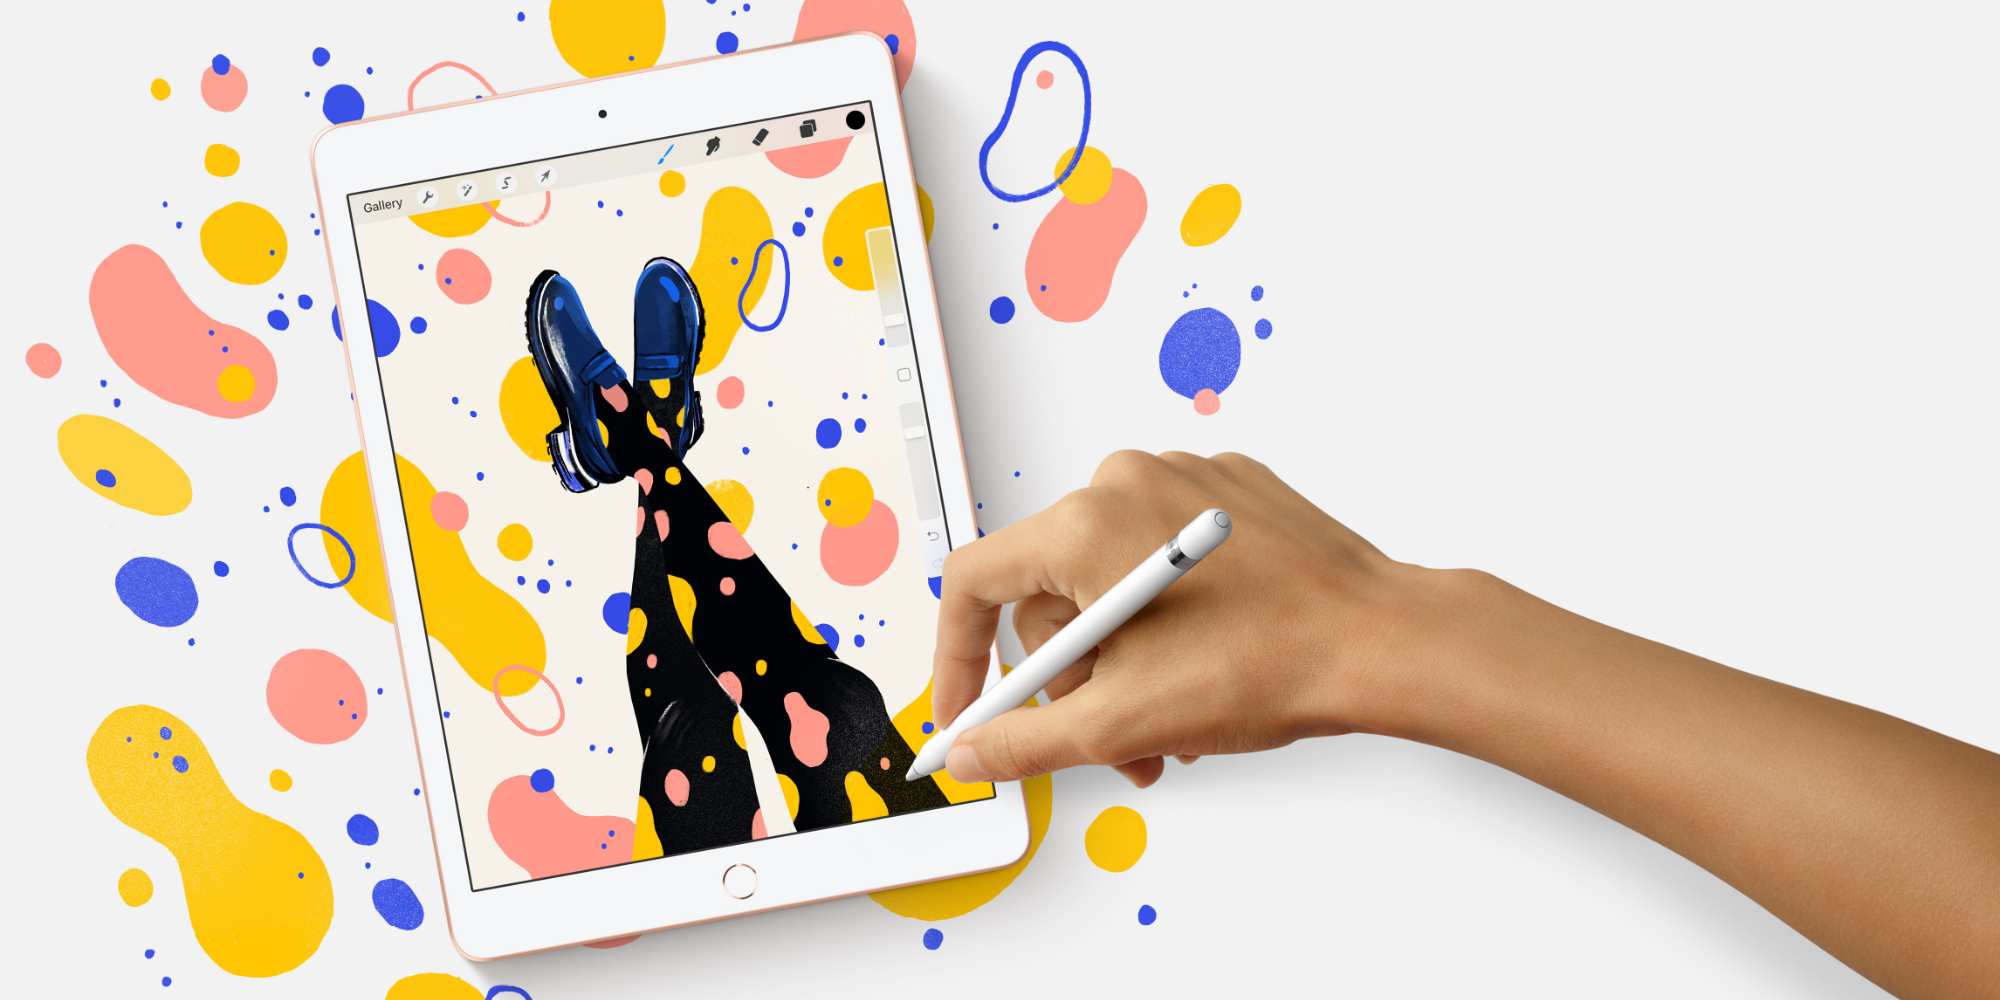 Apple's 10.2-inch iPad 128GB falls to a new low of $320 (Reg. up to $429) - 9to5Toys